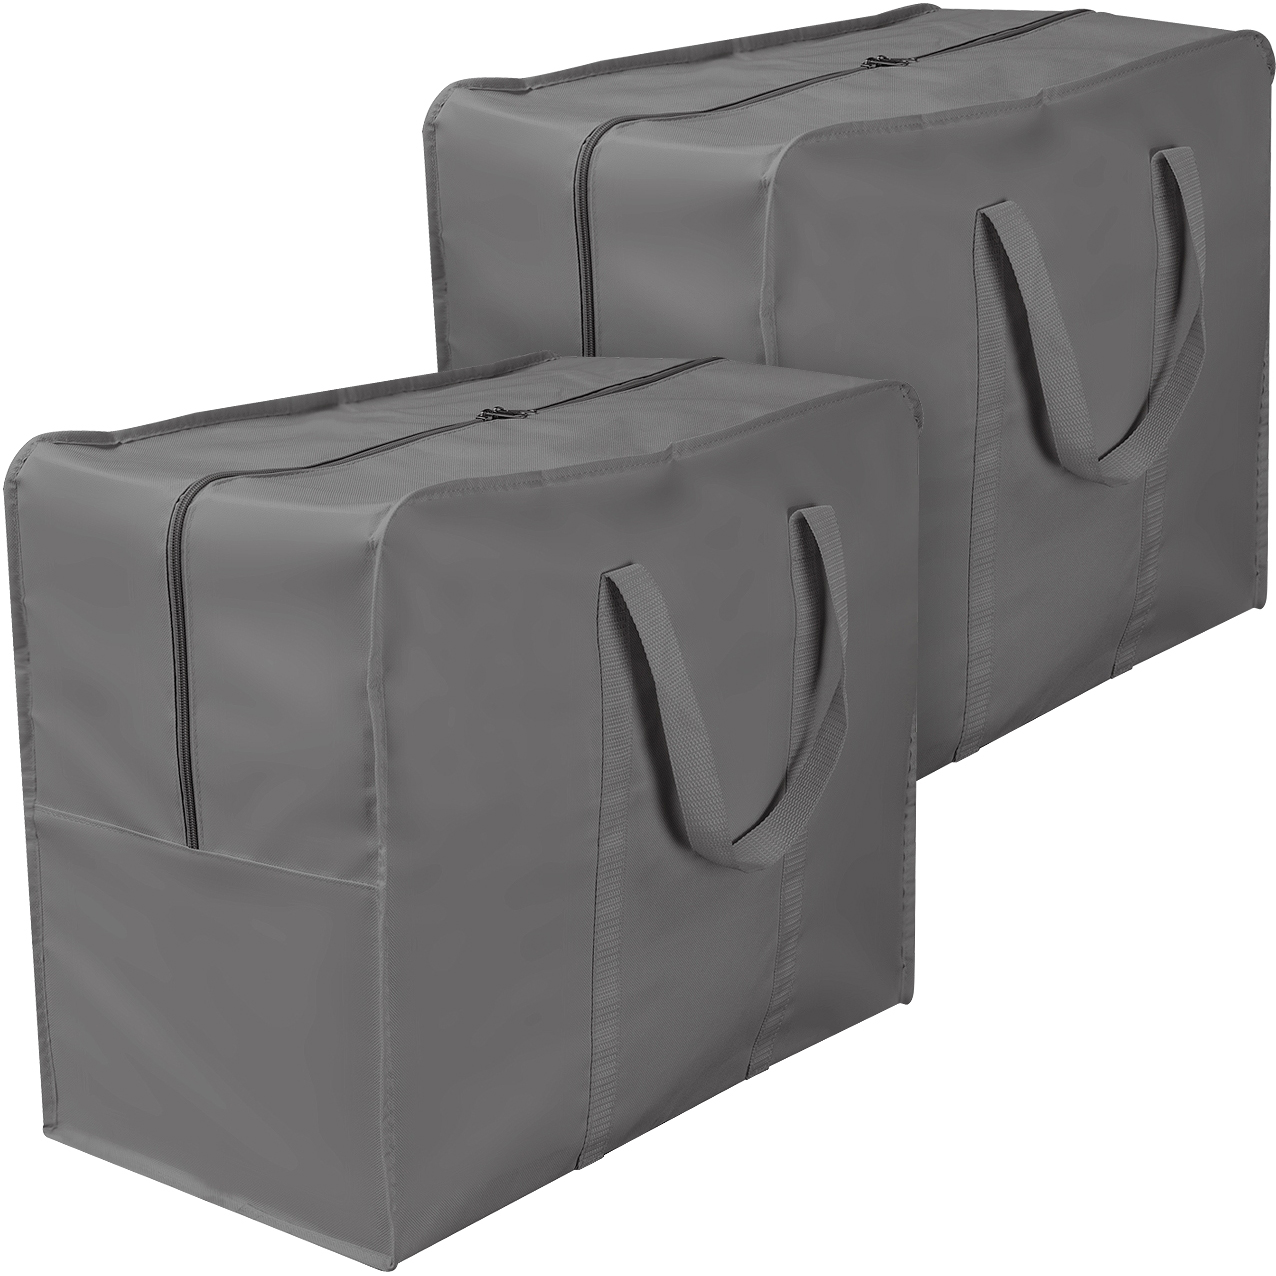 Sorbus Storage Bag Organizers, Great for Clothes, Blankets, Bedding, Foldable & Portable for Travel, Closet, Bedroom, Dorm, and more (Travel Storage Bag - 2 Pack)